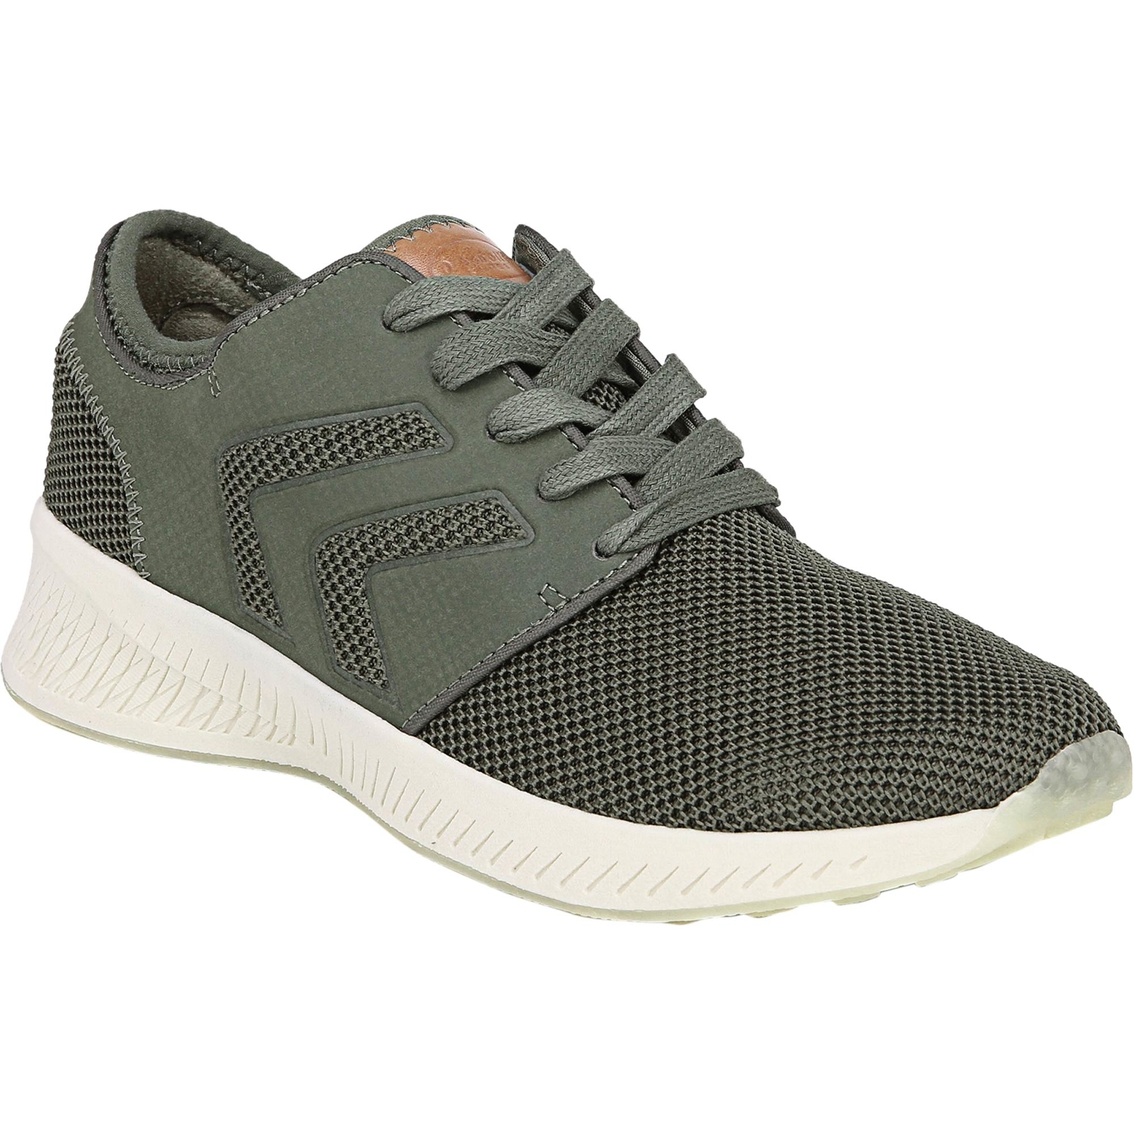 d1b551b21a166 Dr. Scholl's Women's Restore Sneakers | Casuals | Shoes | Shop The ...